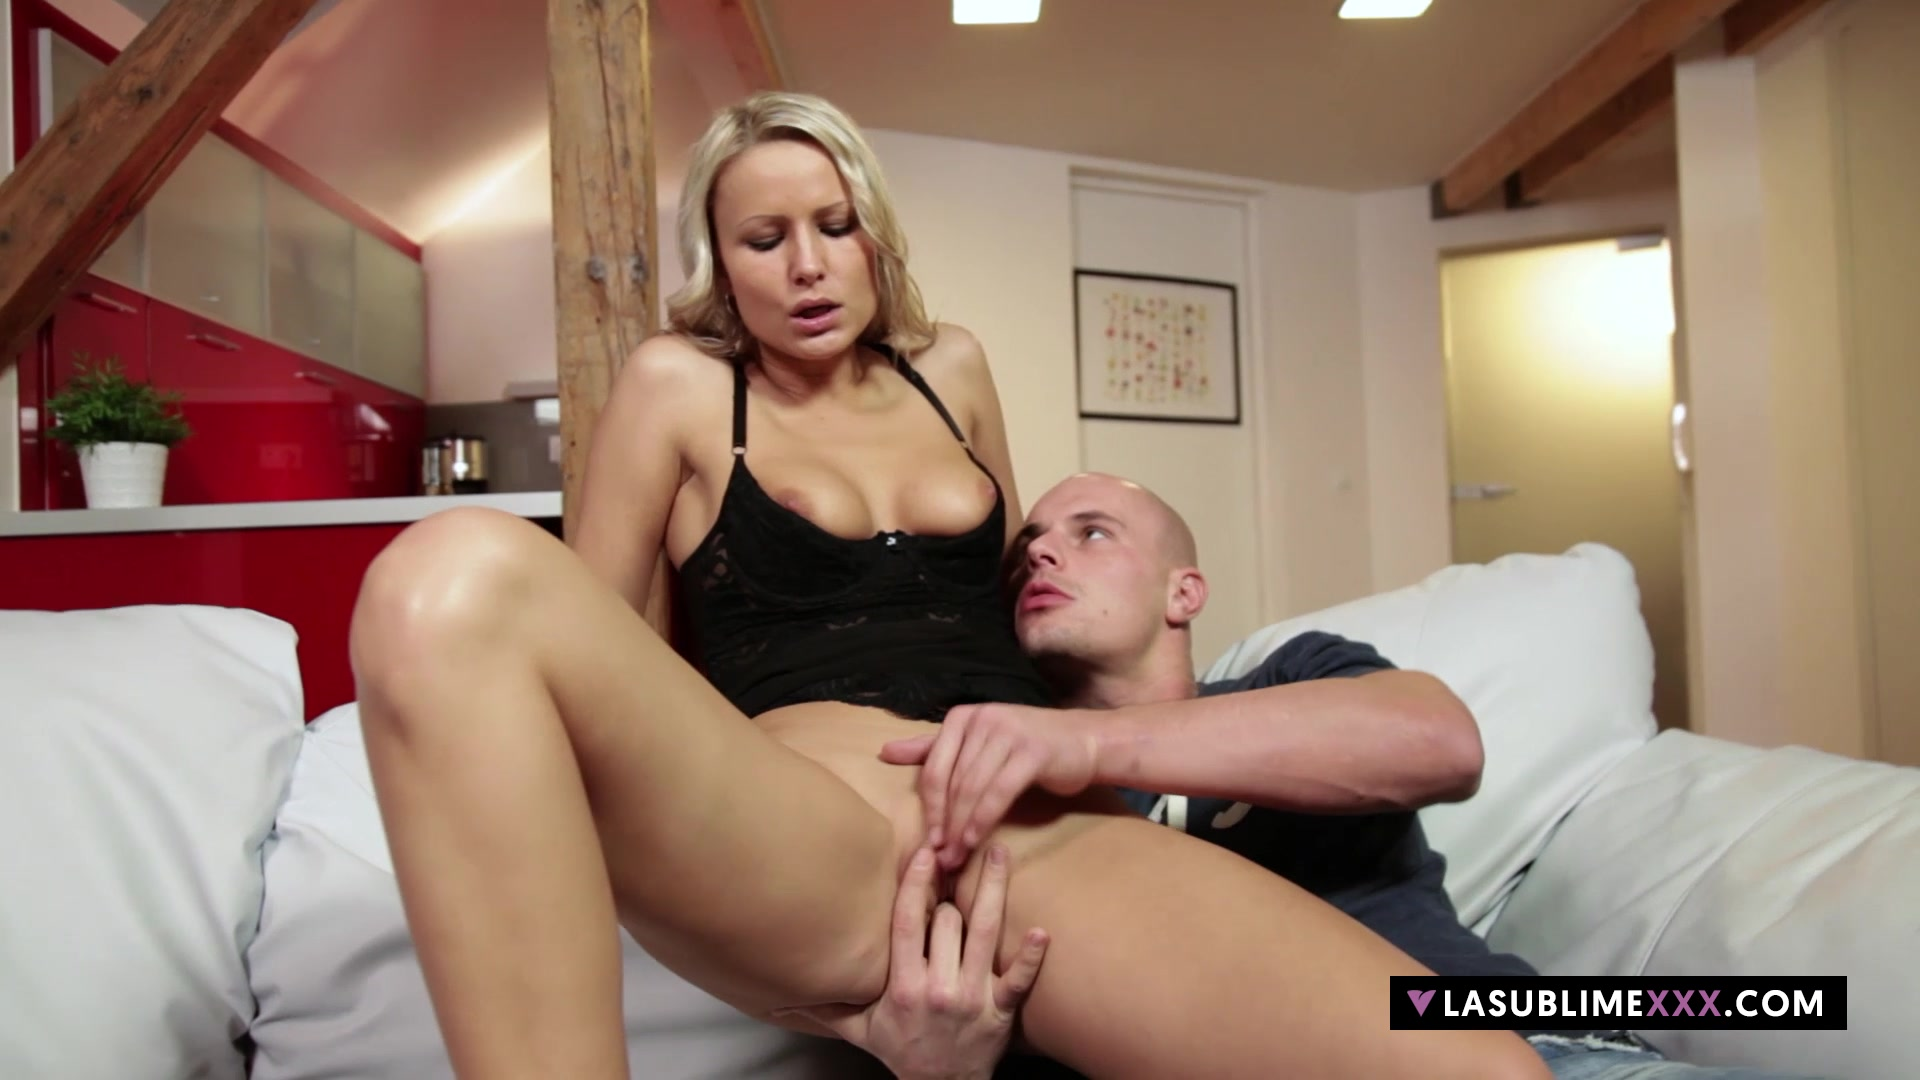 Lasublimexxx Milf Samantha Jolie Gets Her Ass Gap